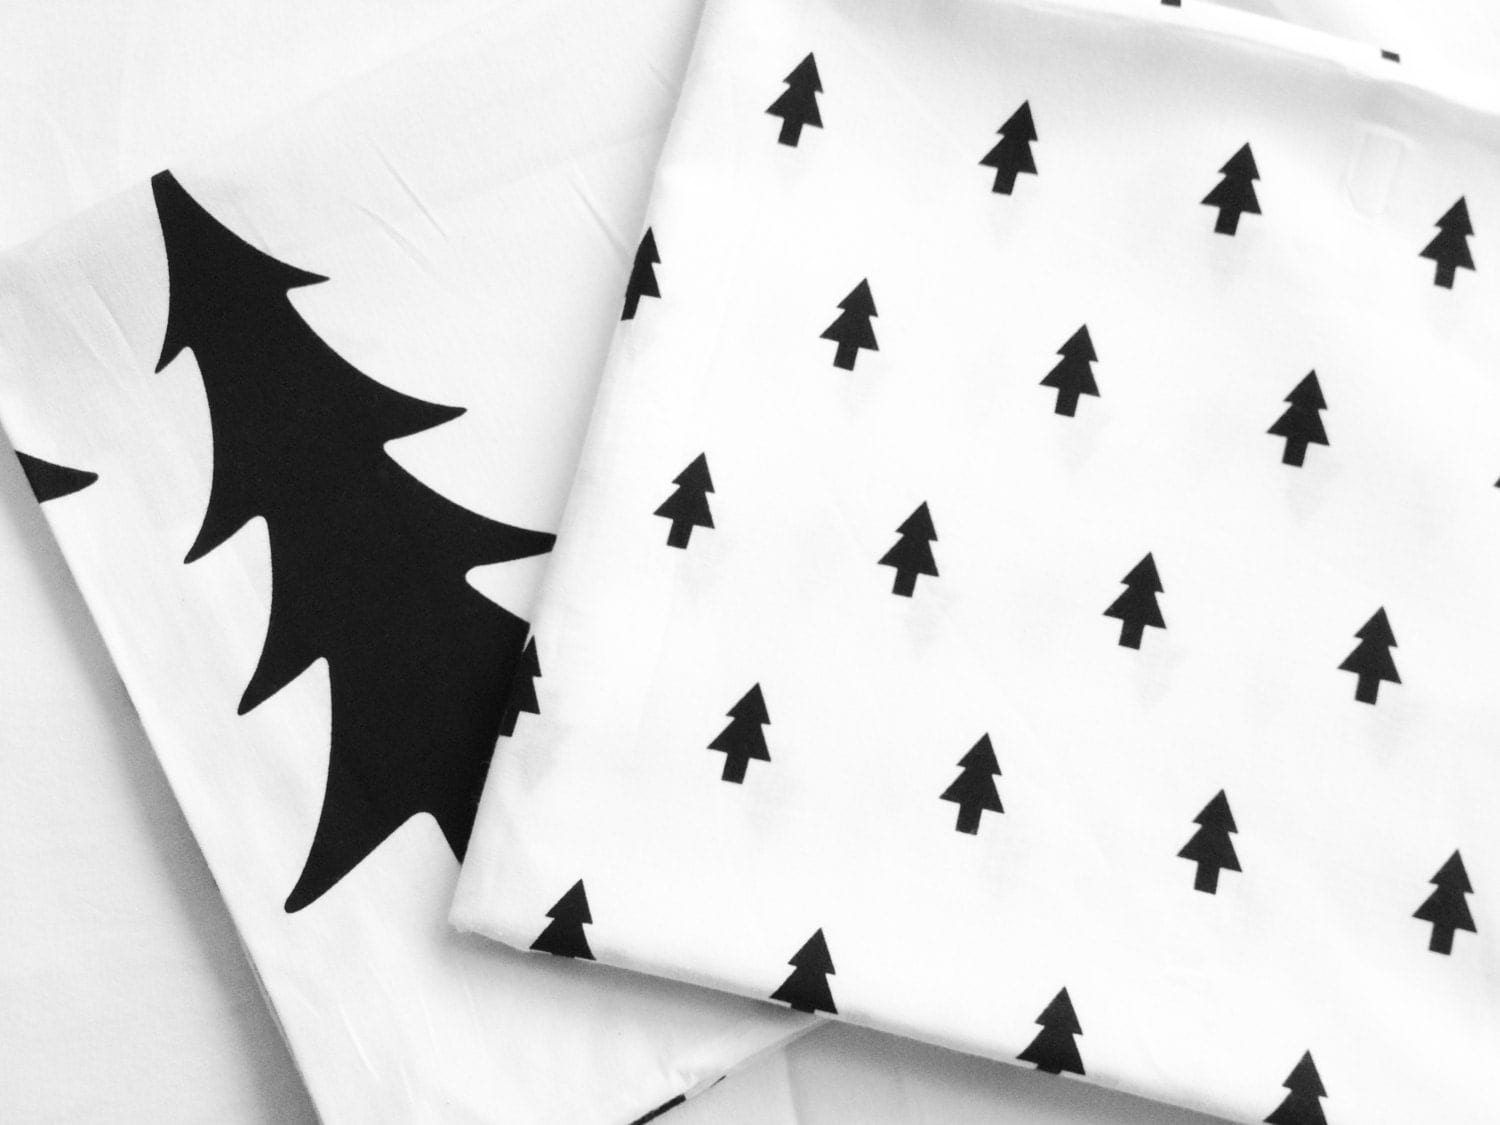 Simple Black and White Patterns Black Trees Cotton Fabric - Small Trees or Big Trees - Northern Europe Style - Christmas Fabric By the Yard - landofoh